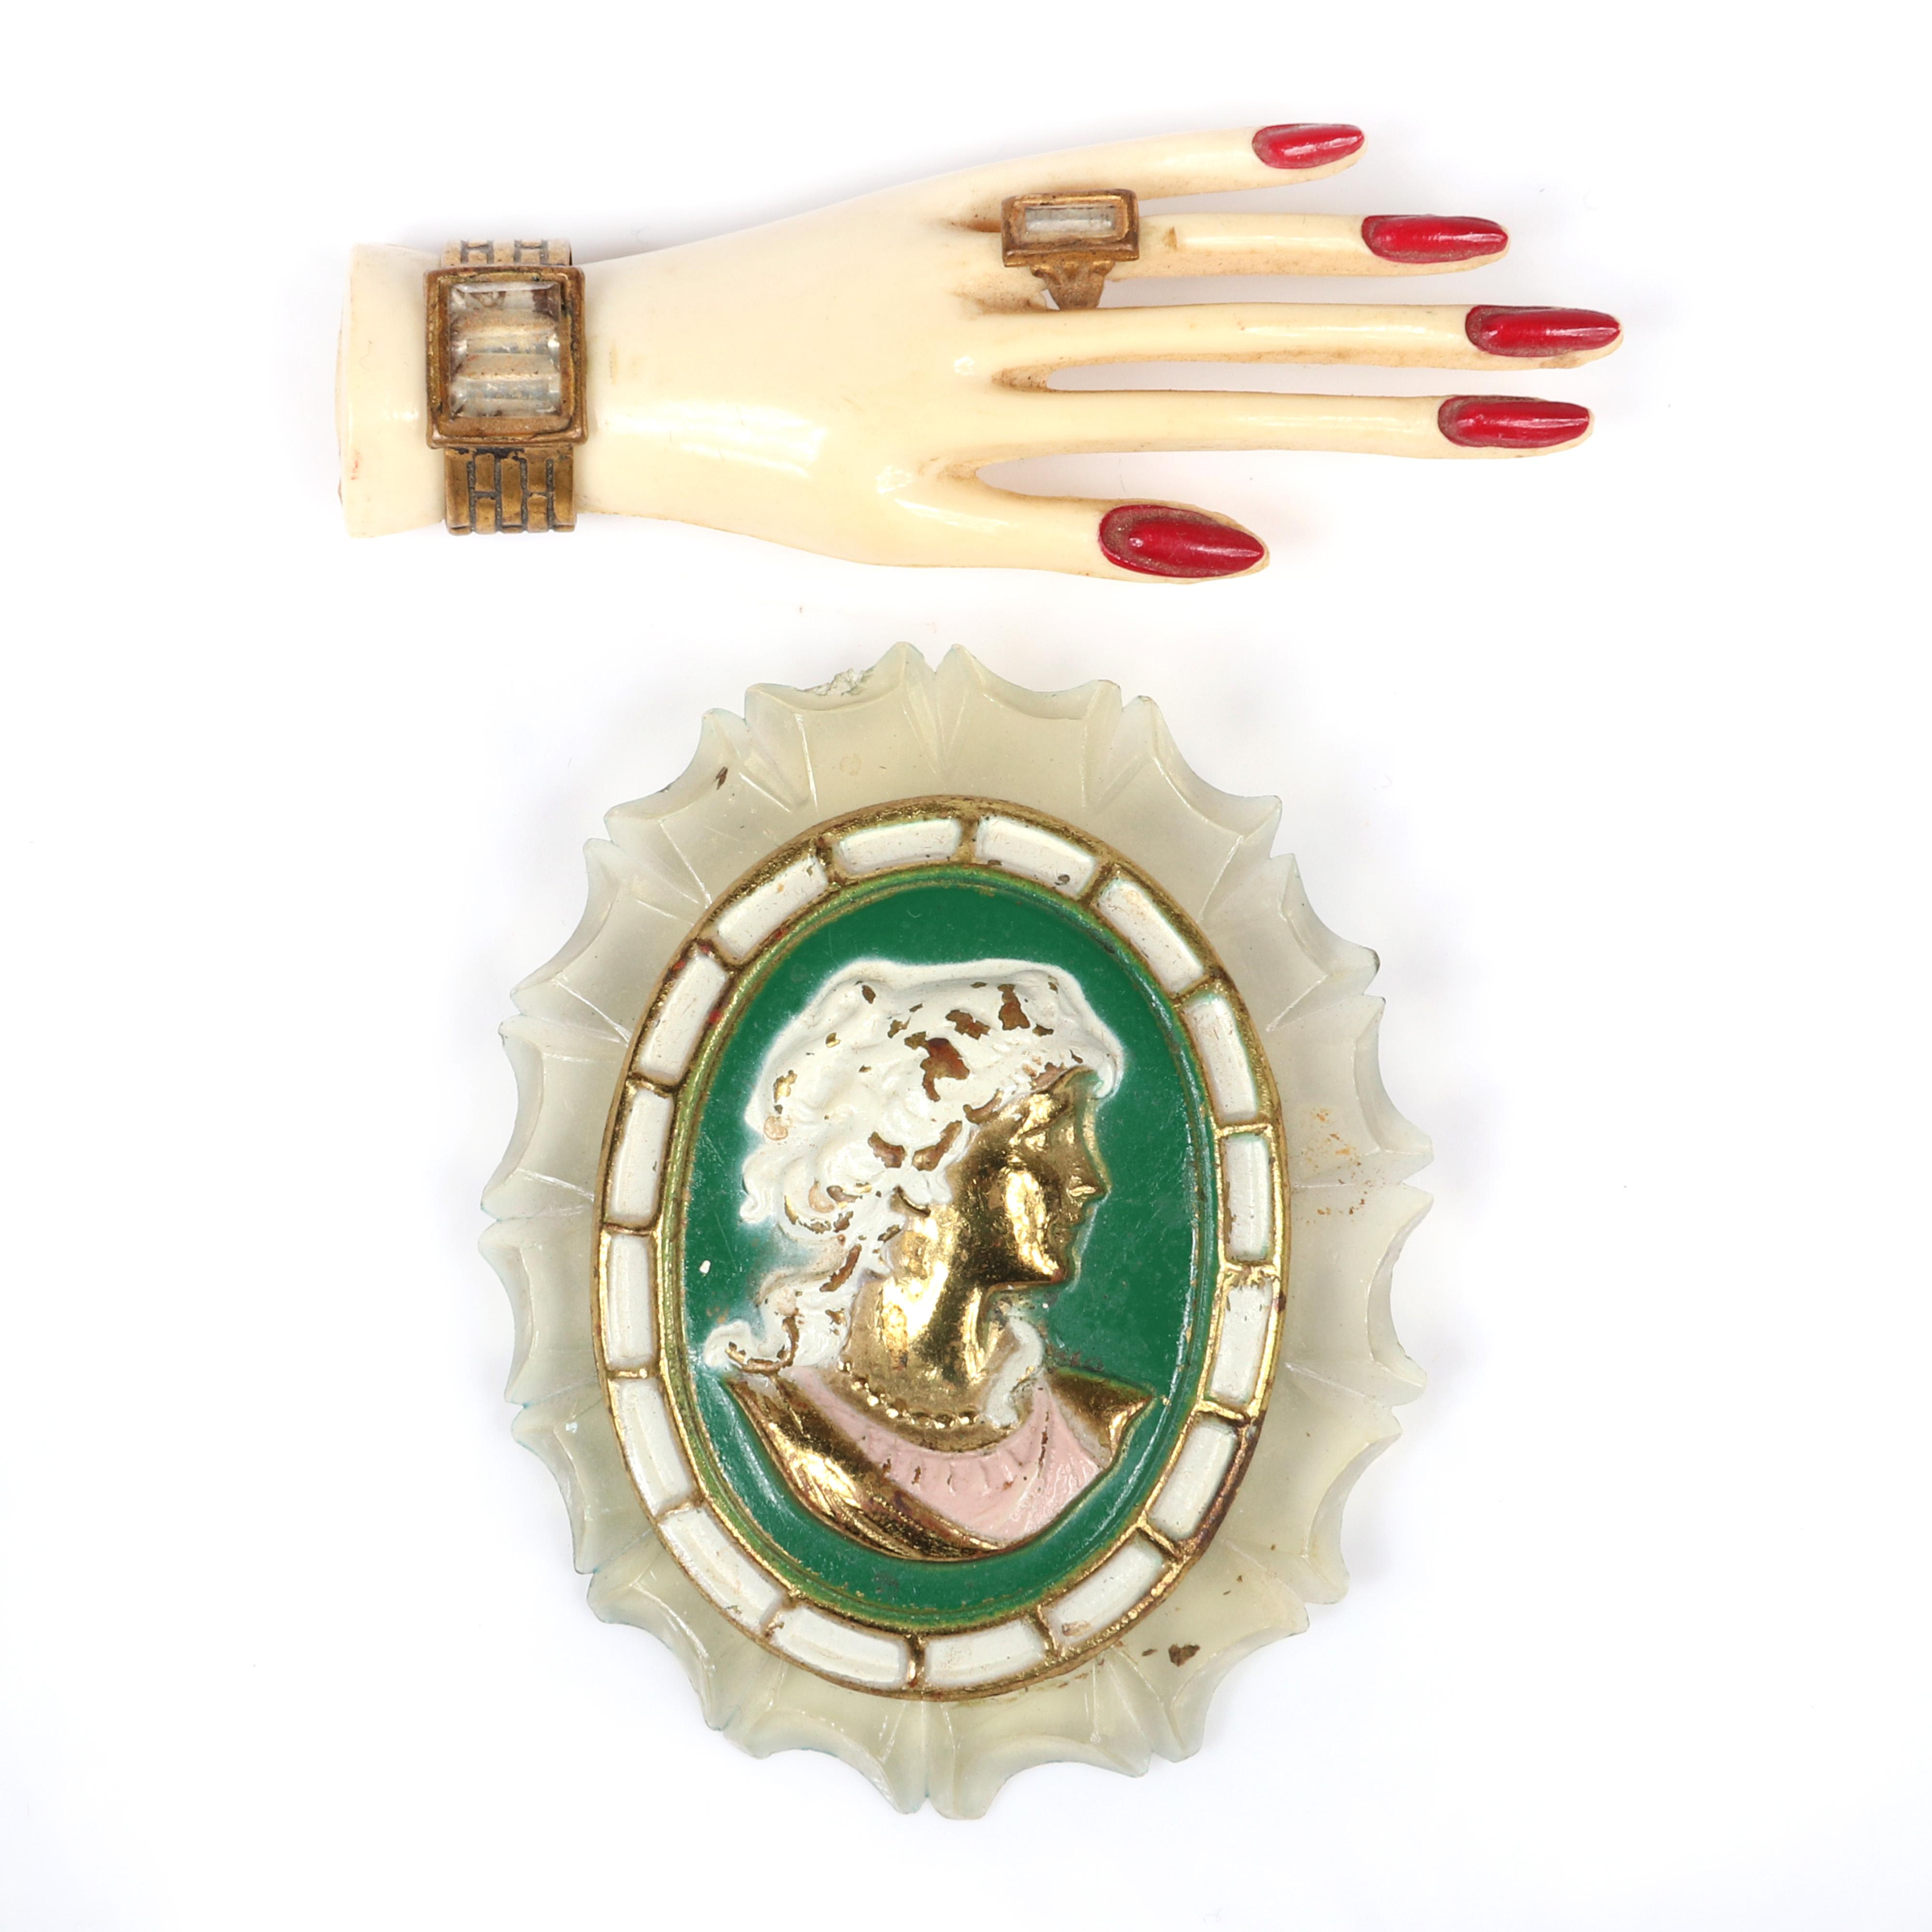 Two vintage retro celluloid pins: Art Deco glamour hand with enameled nails and brass ring and bracelet, with transparent scalloped celluloid and enameled metal cameo pin. 2 x 1 in. (5.08 x 2.54 cm.)